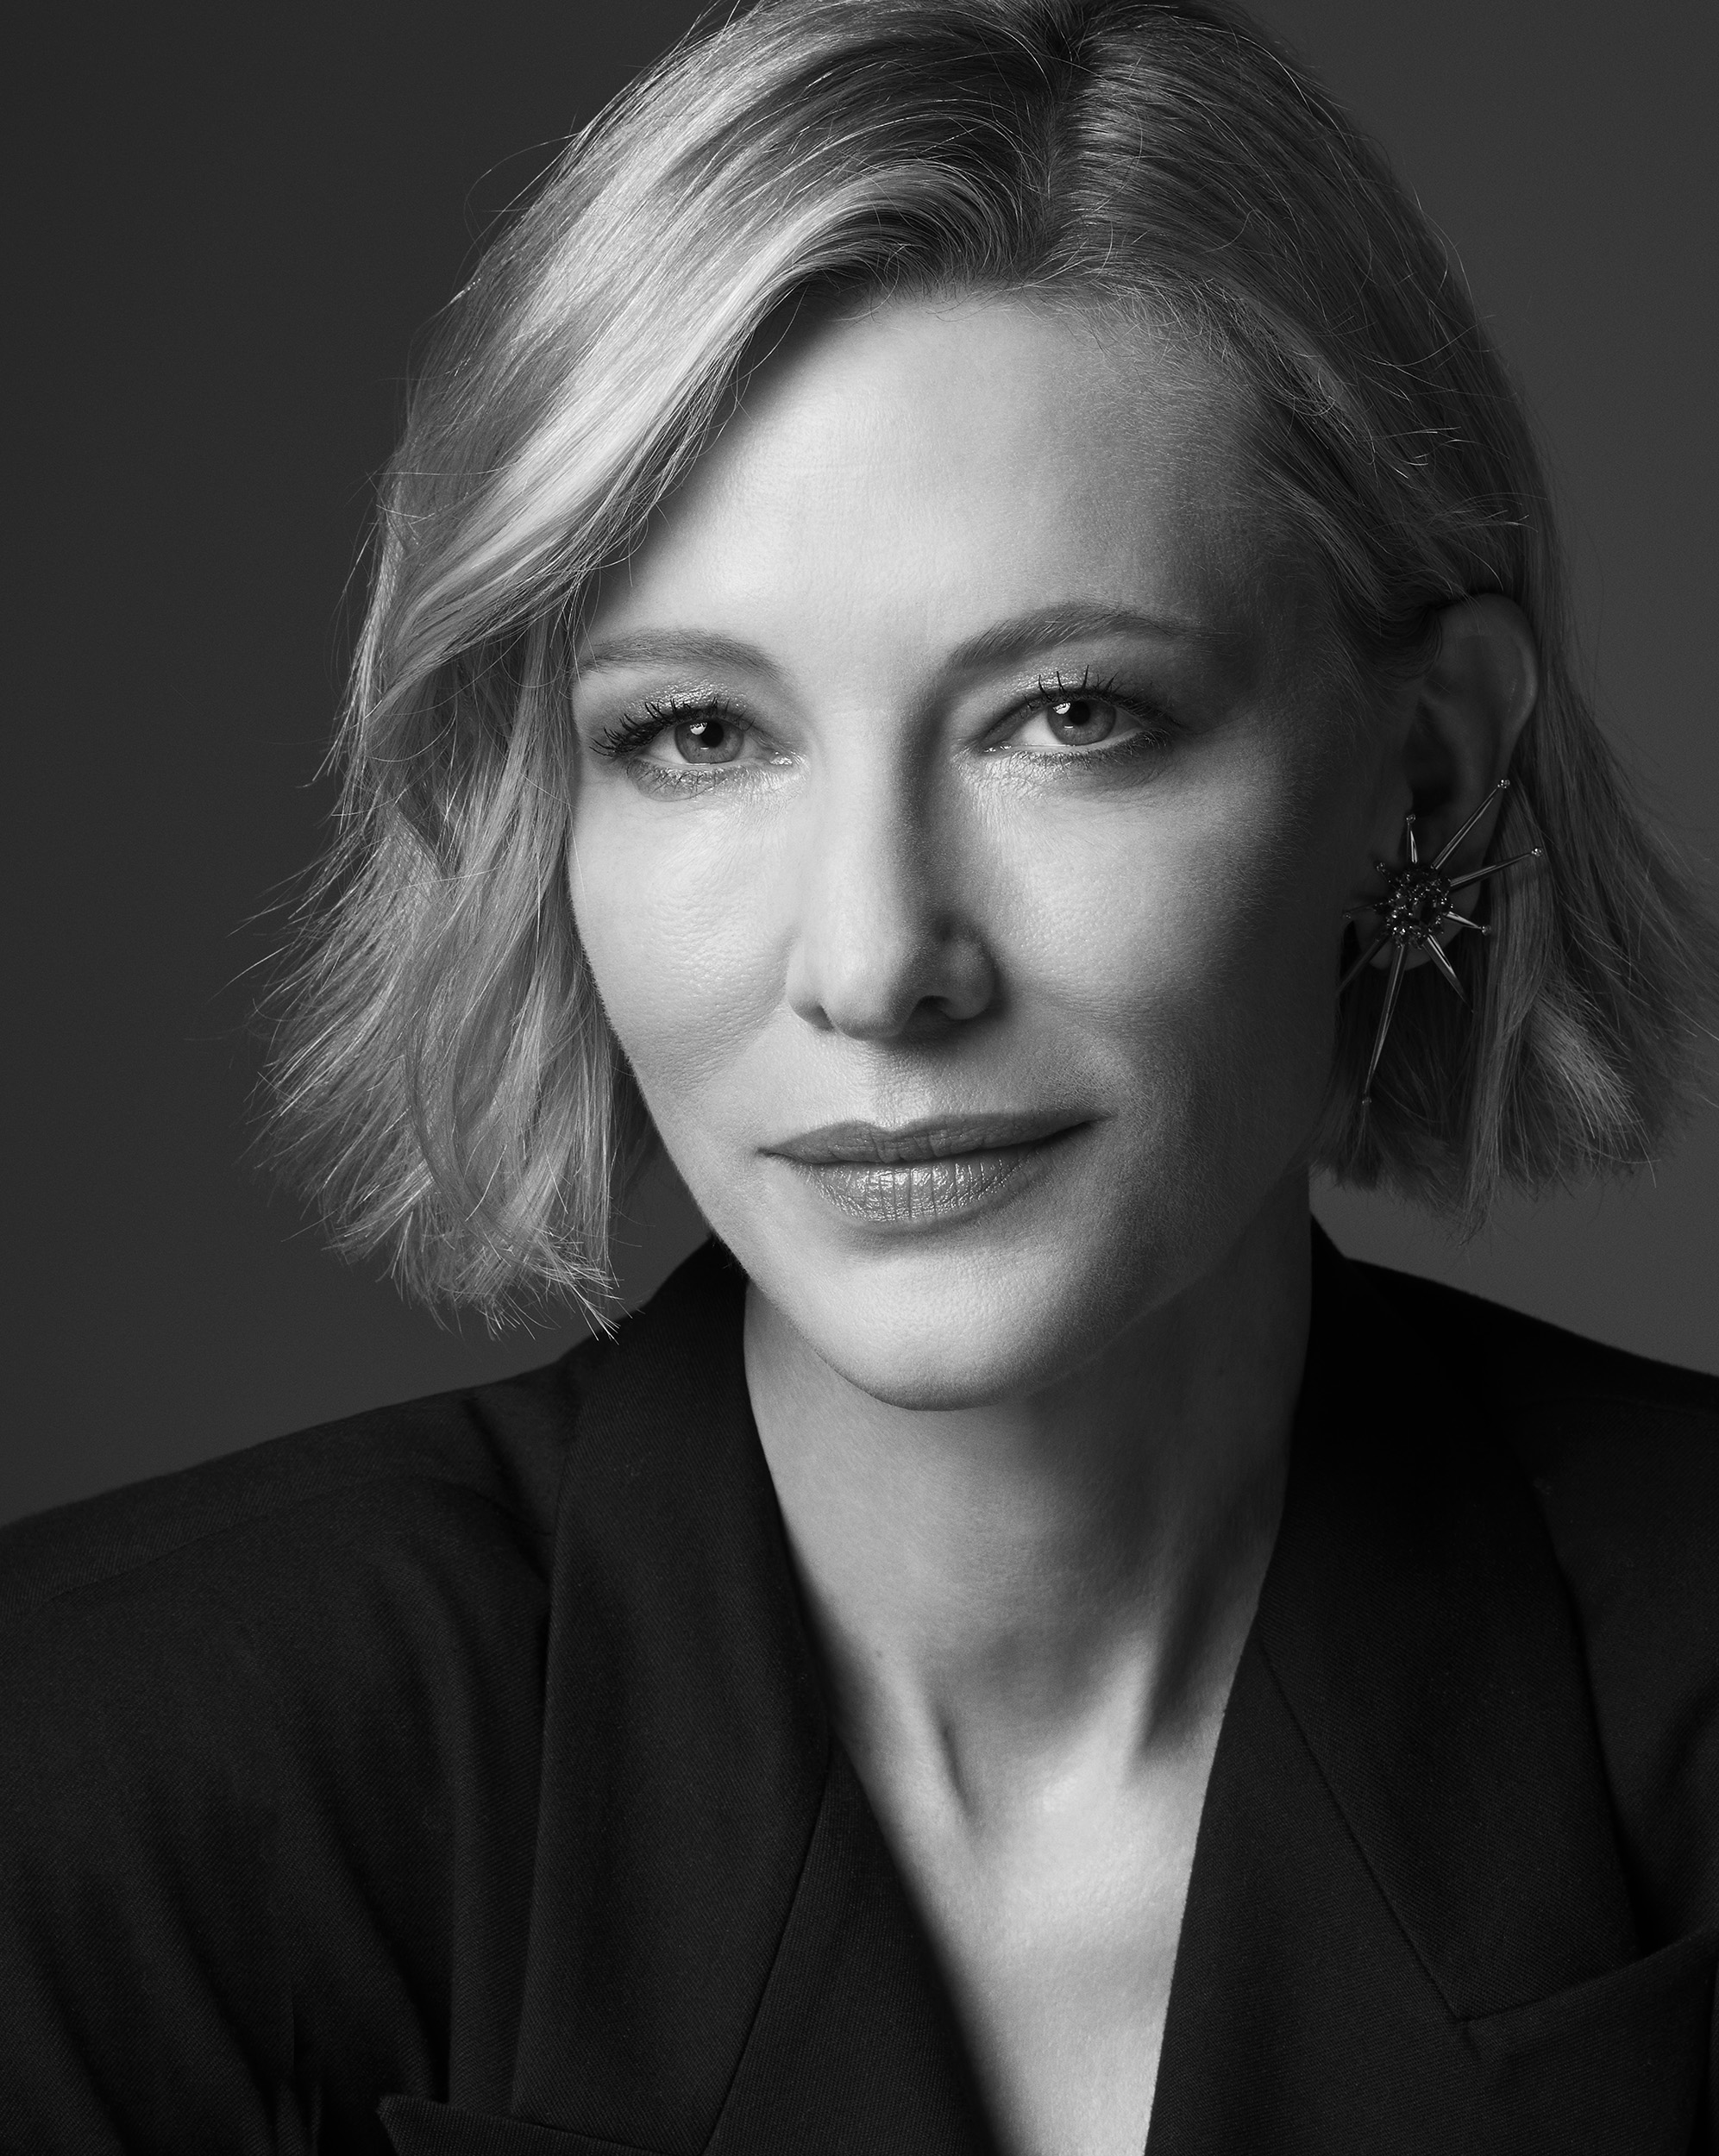 Cate-Blanchett-by-Robert-Ascroft